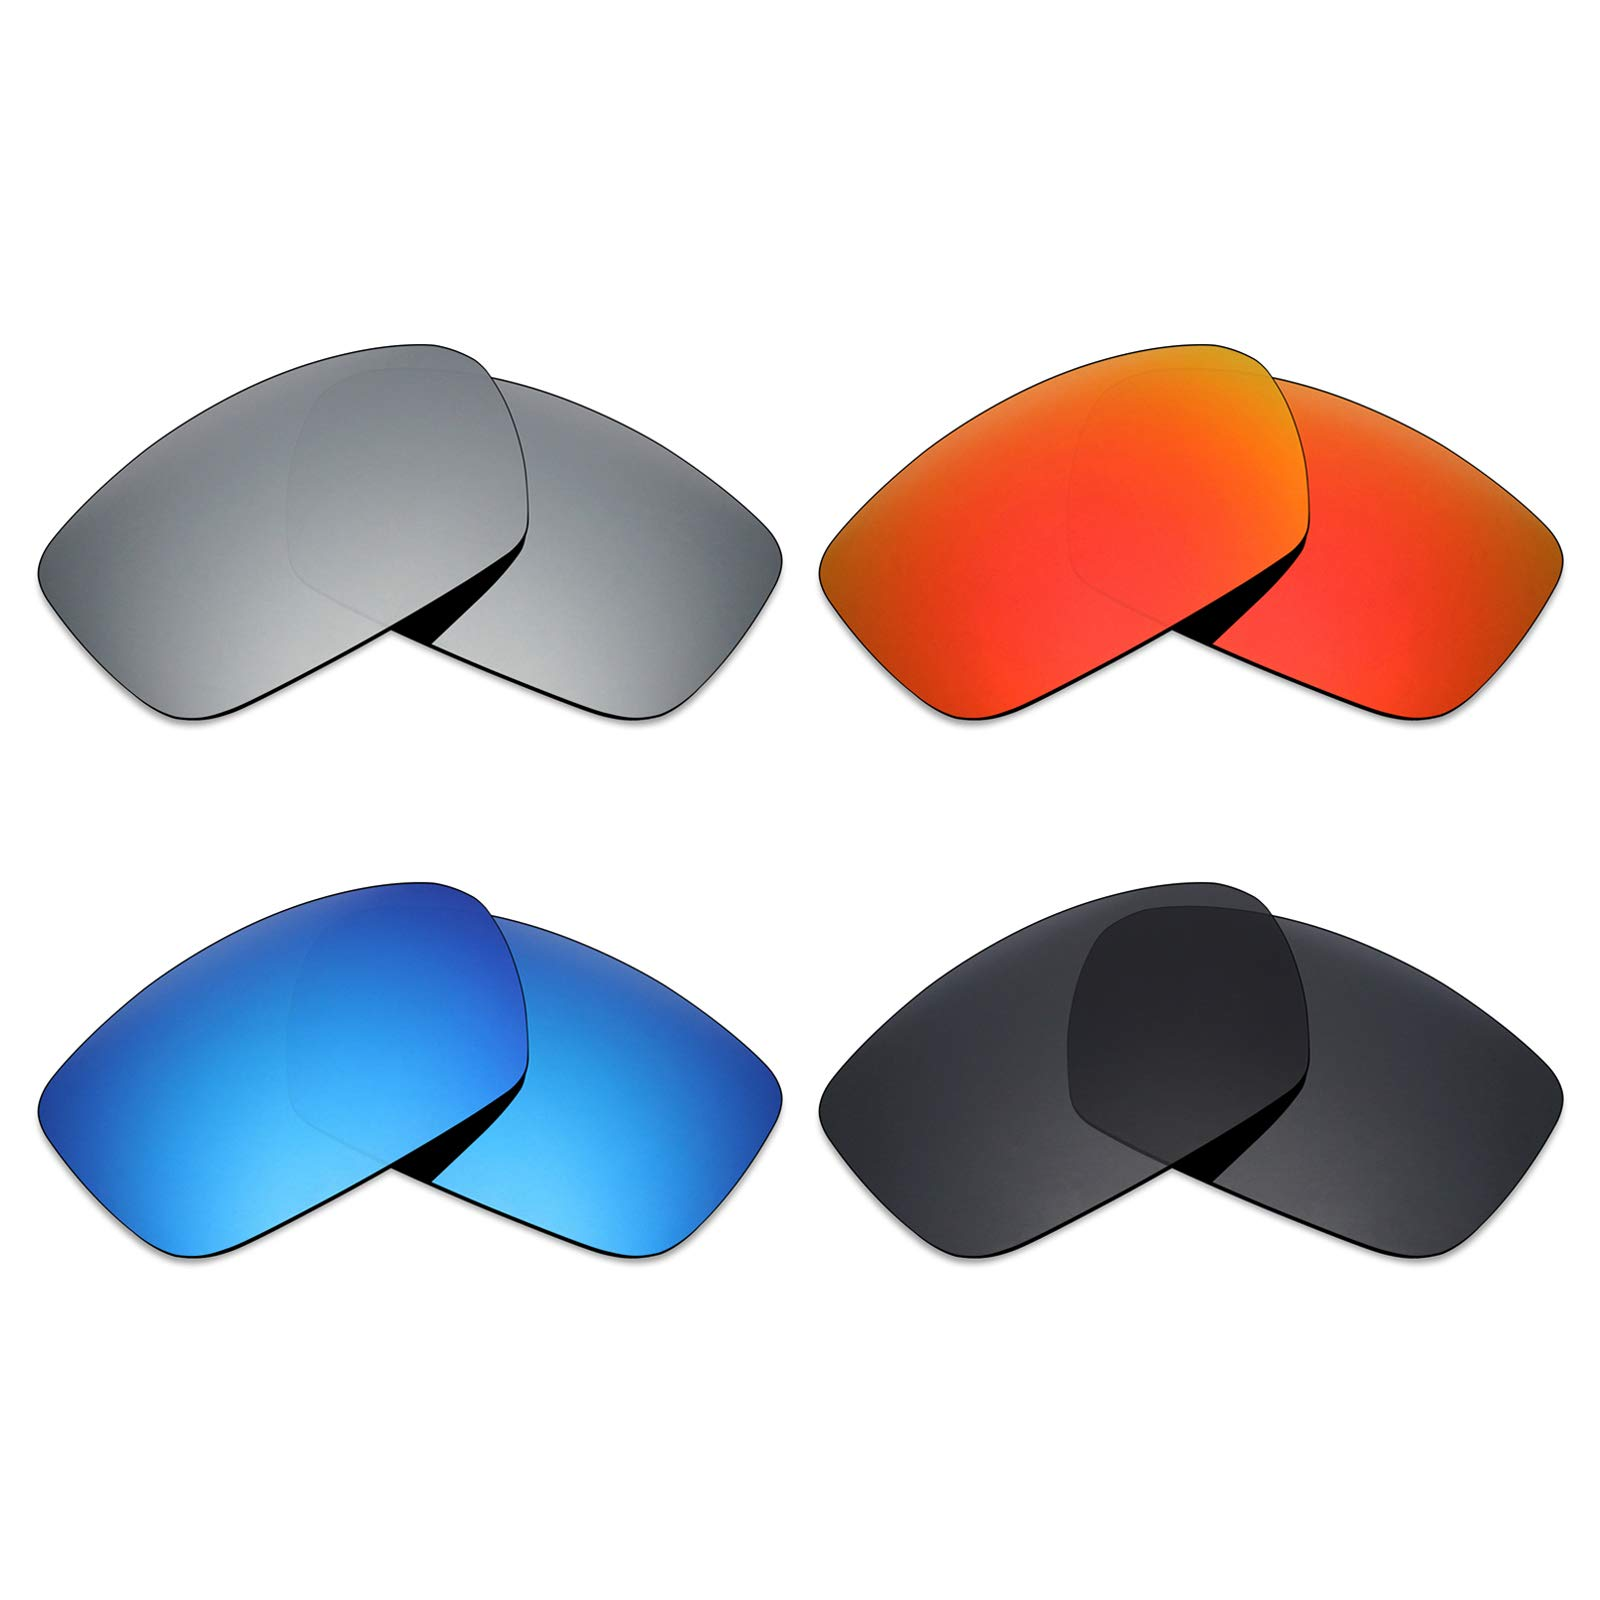 Mryok 4 Pair Polarized Replacement Lenses for Spy Optic Dirk Sunglass - Stealth Black/Fire Red/Ice Blue/Silver Titanium